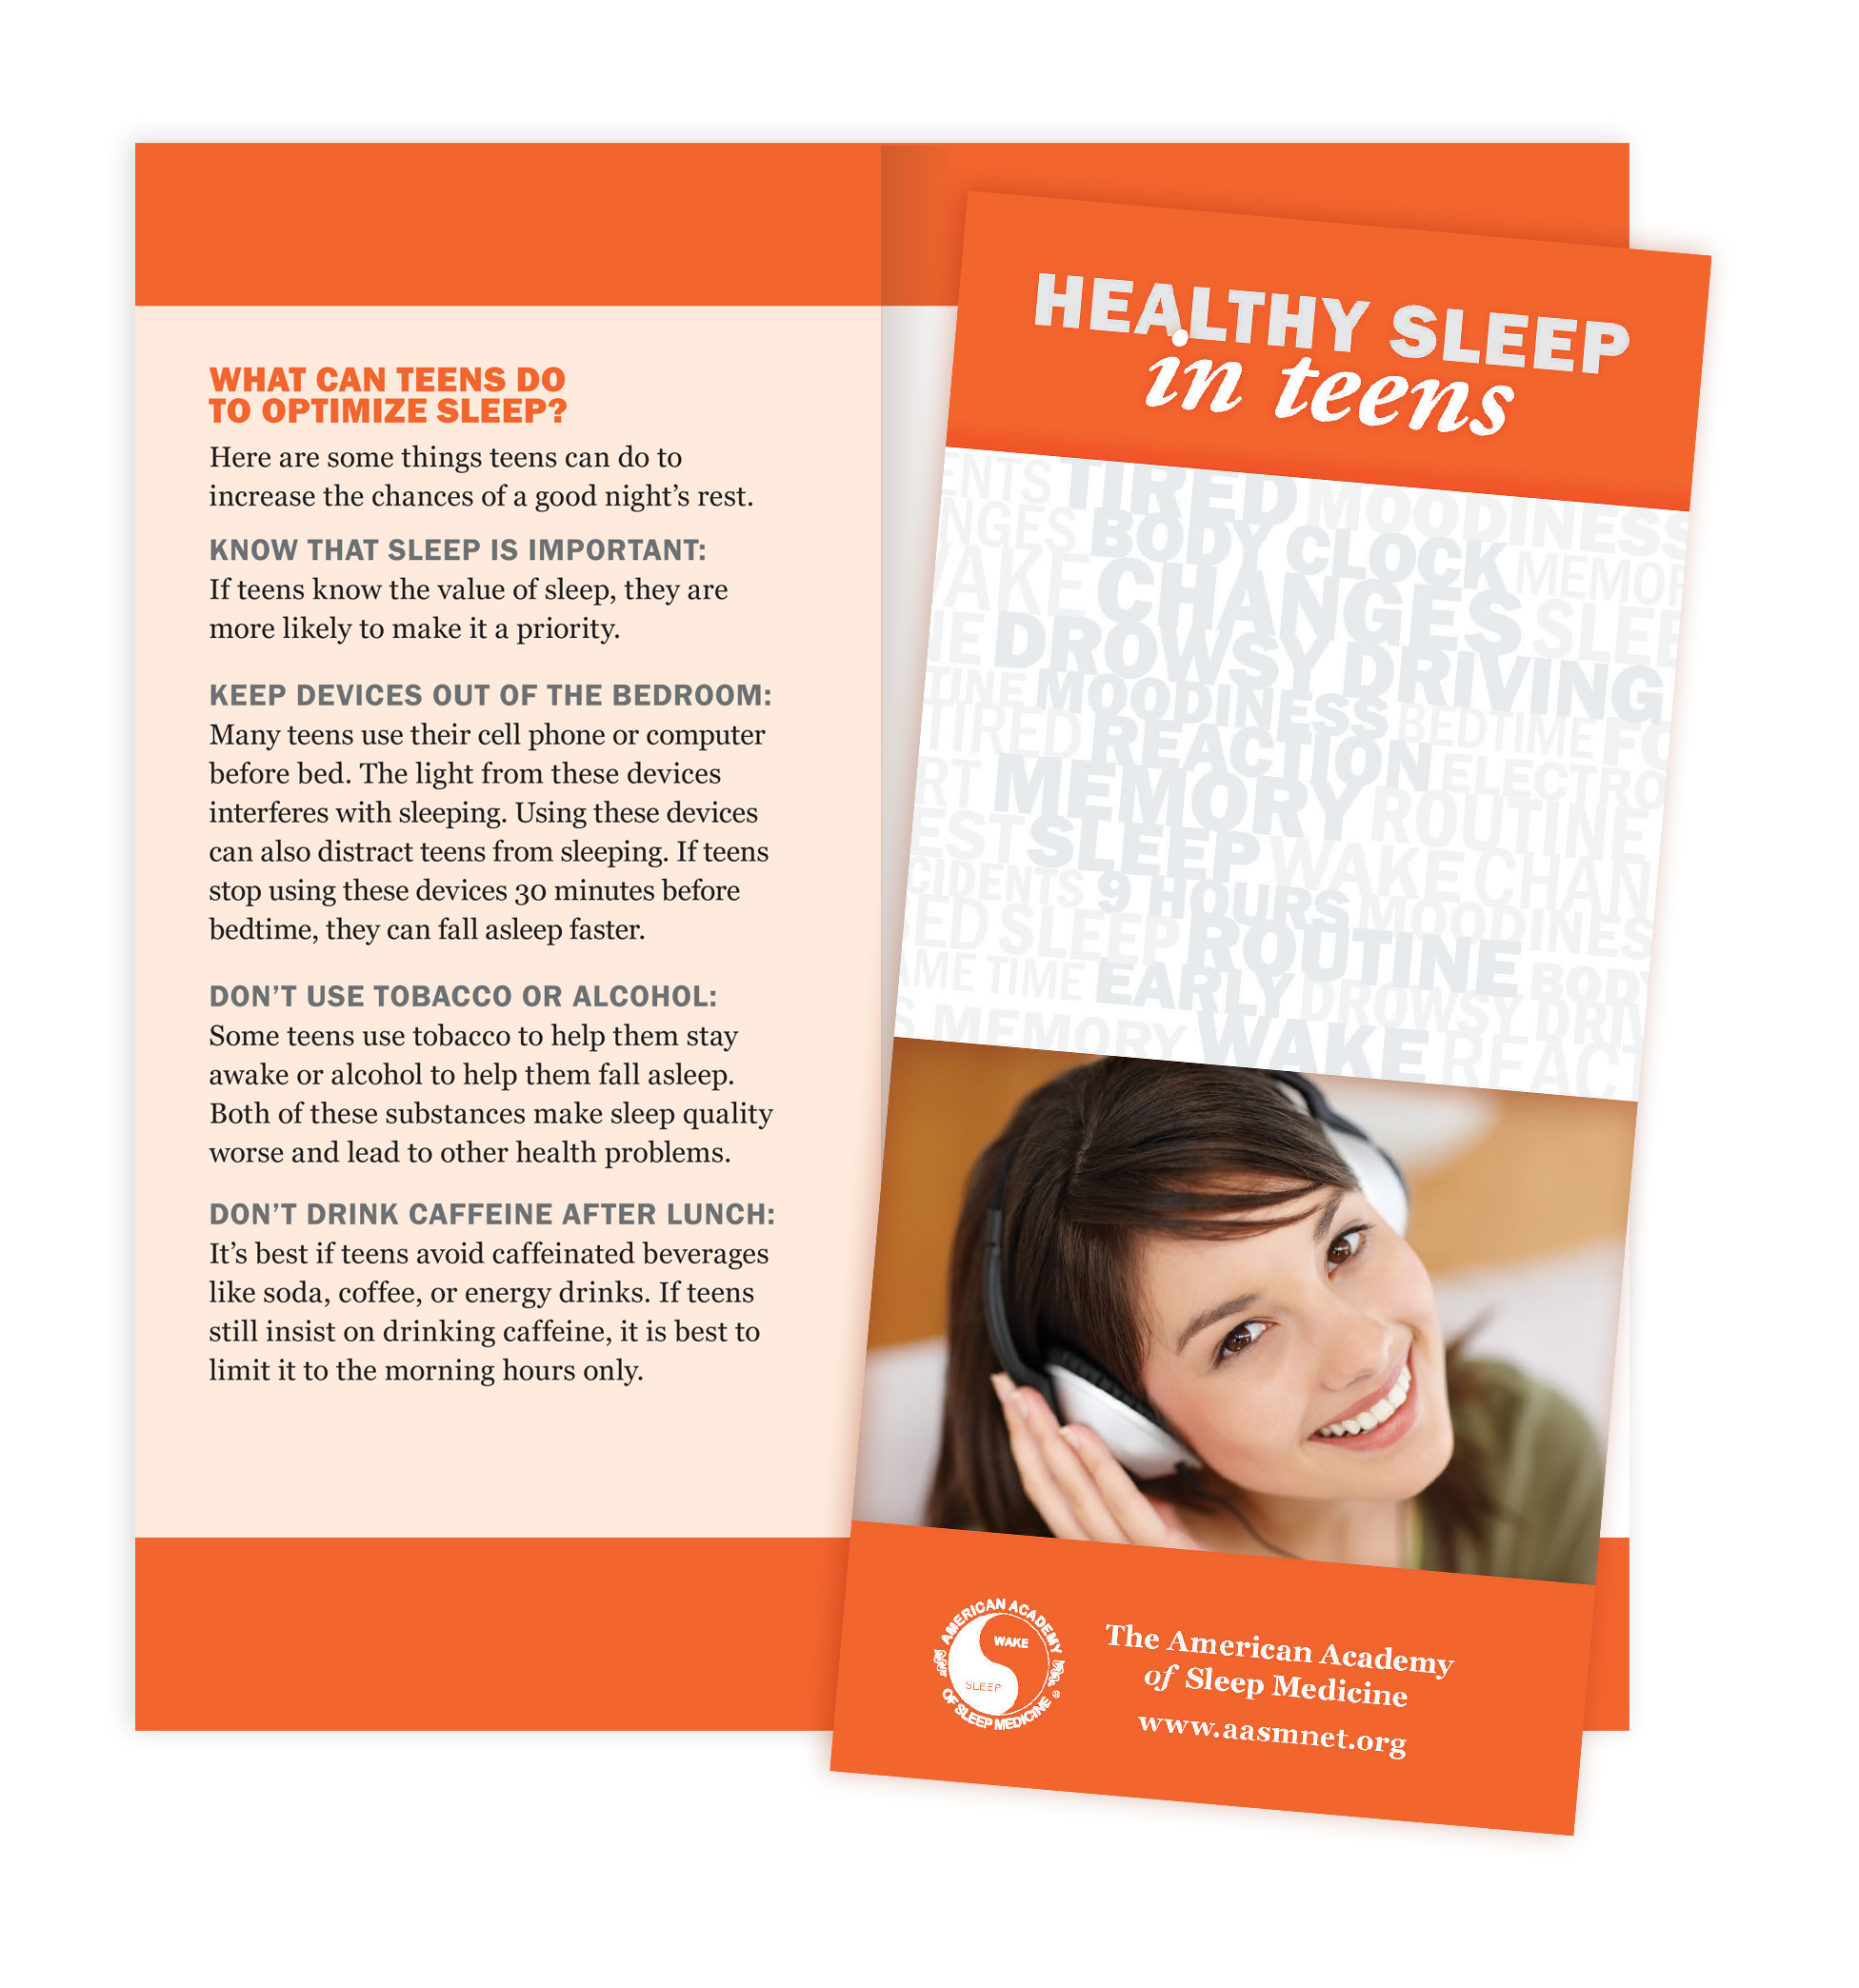 Healthy Sleep in Teens Patient Education Brochures (50 brochures)